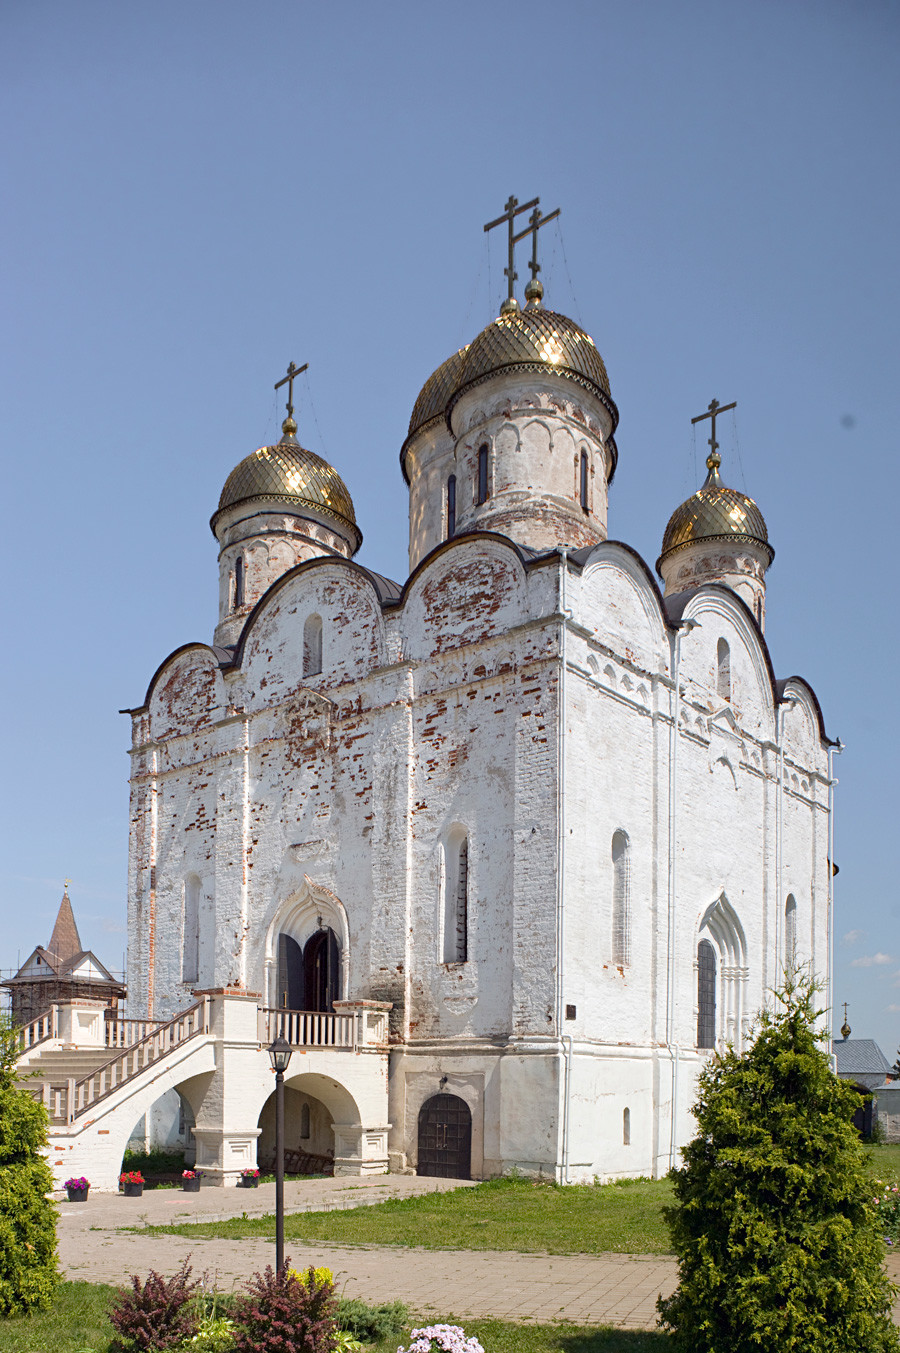 Luzhetsky Monastery. Cathedral of Nativity of the Virgin, southwest view. July 5, 2015.